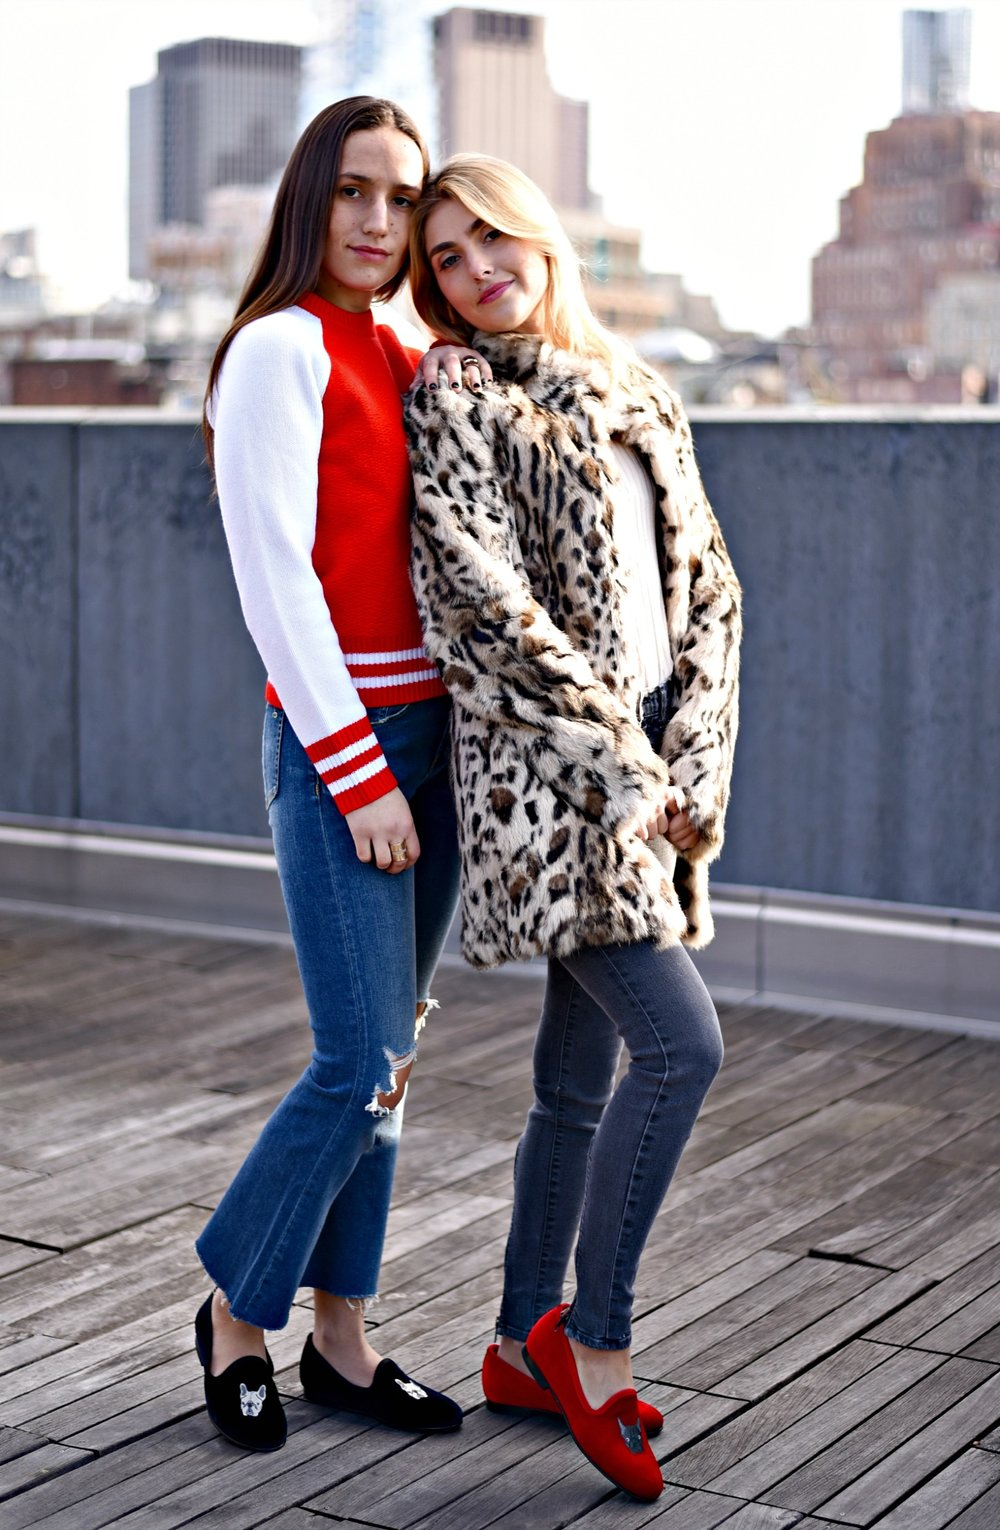 SOPHIE & CHARLOTTE BICKLEY YIN 2MY YANG SISTER FASHION BLOGGERS DEL TORO FRENCH BULLDOG SHOES POST